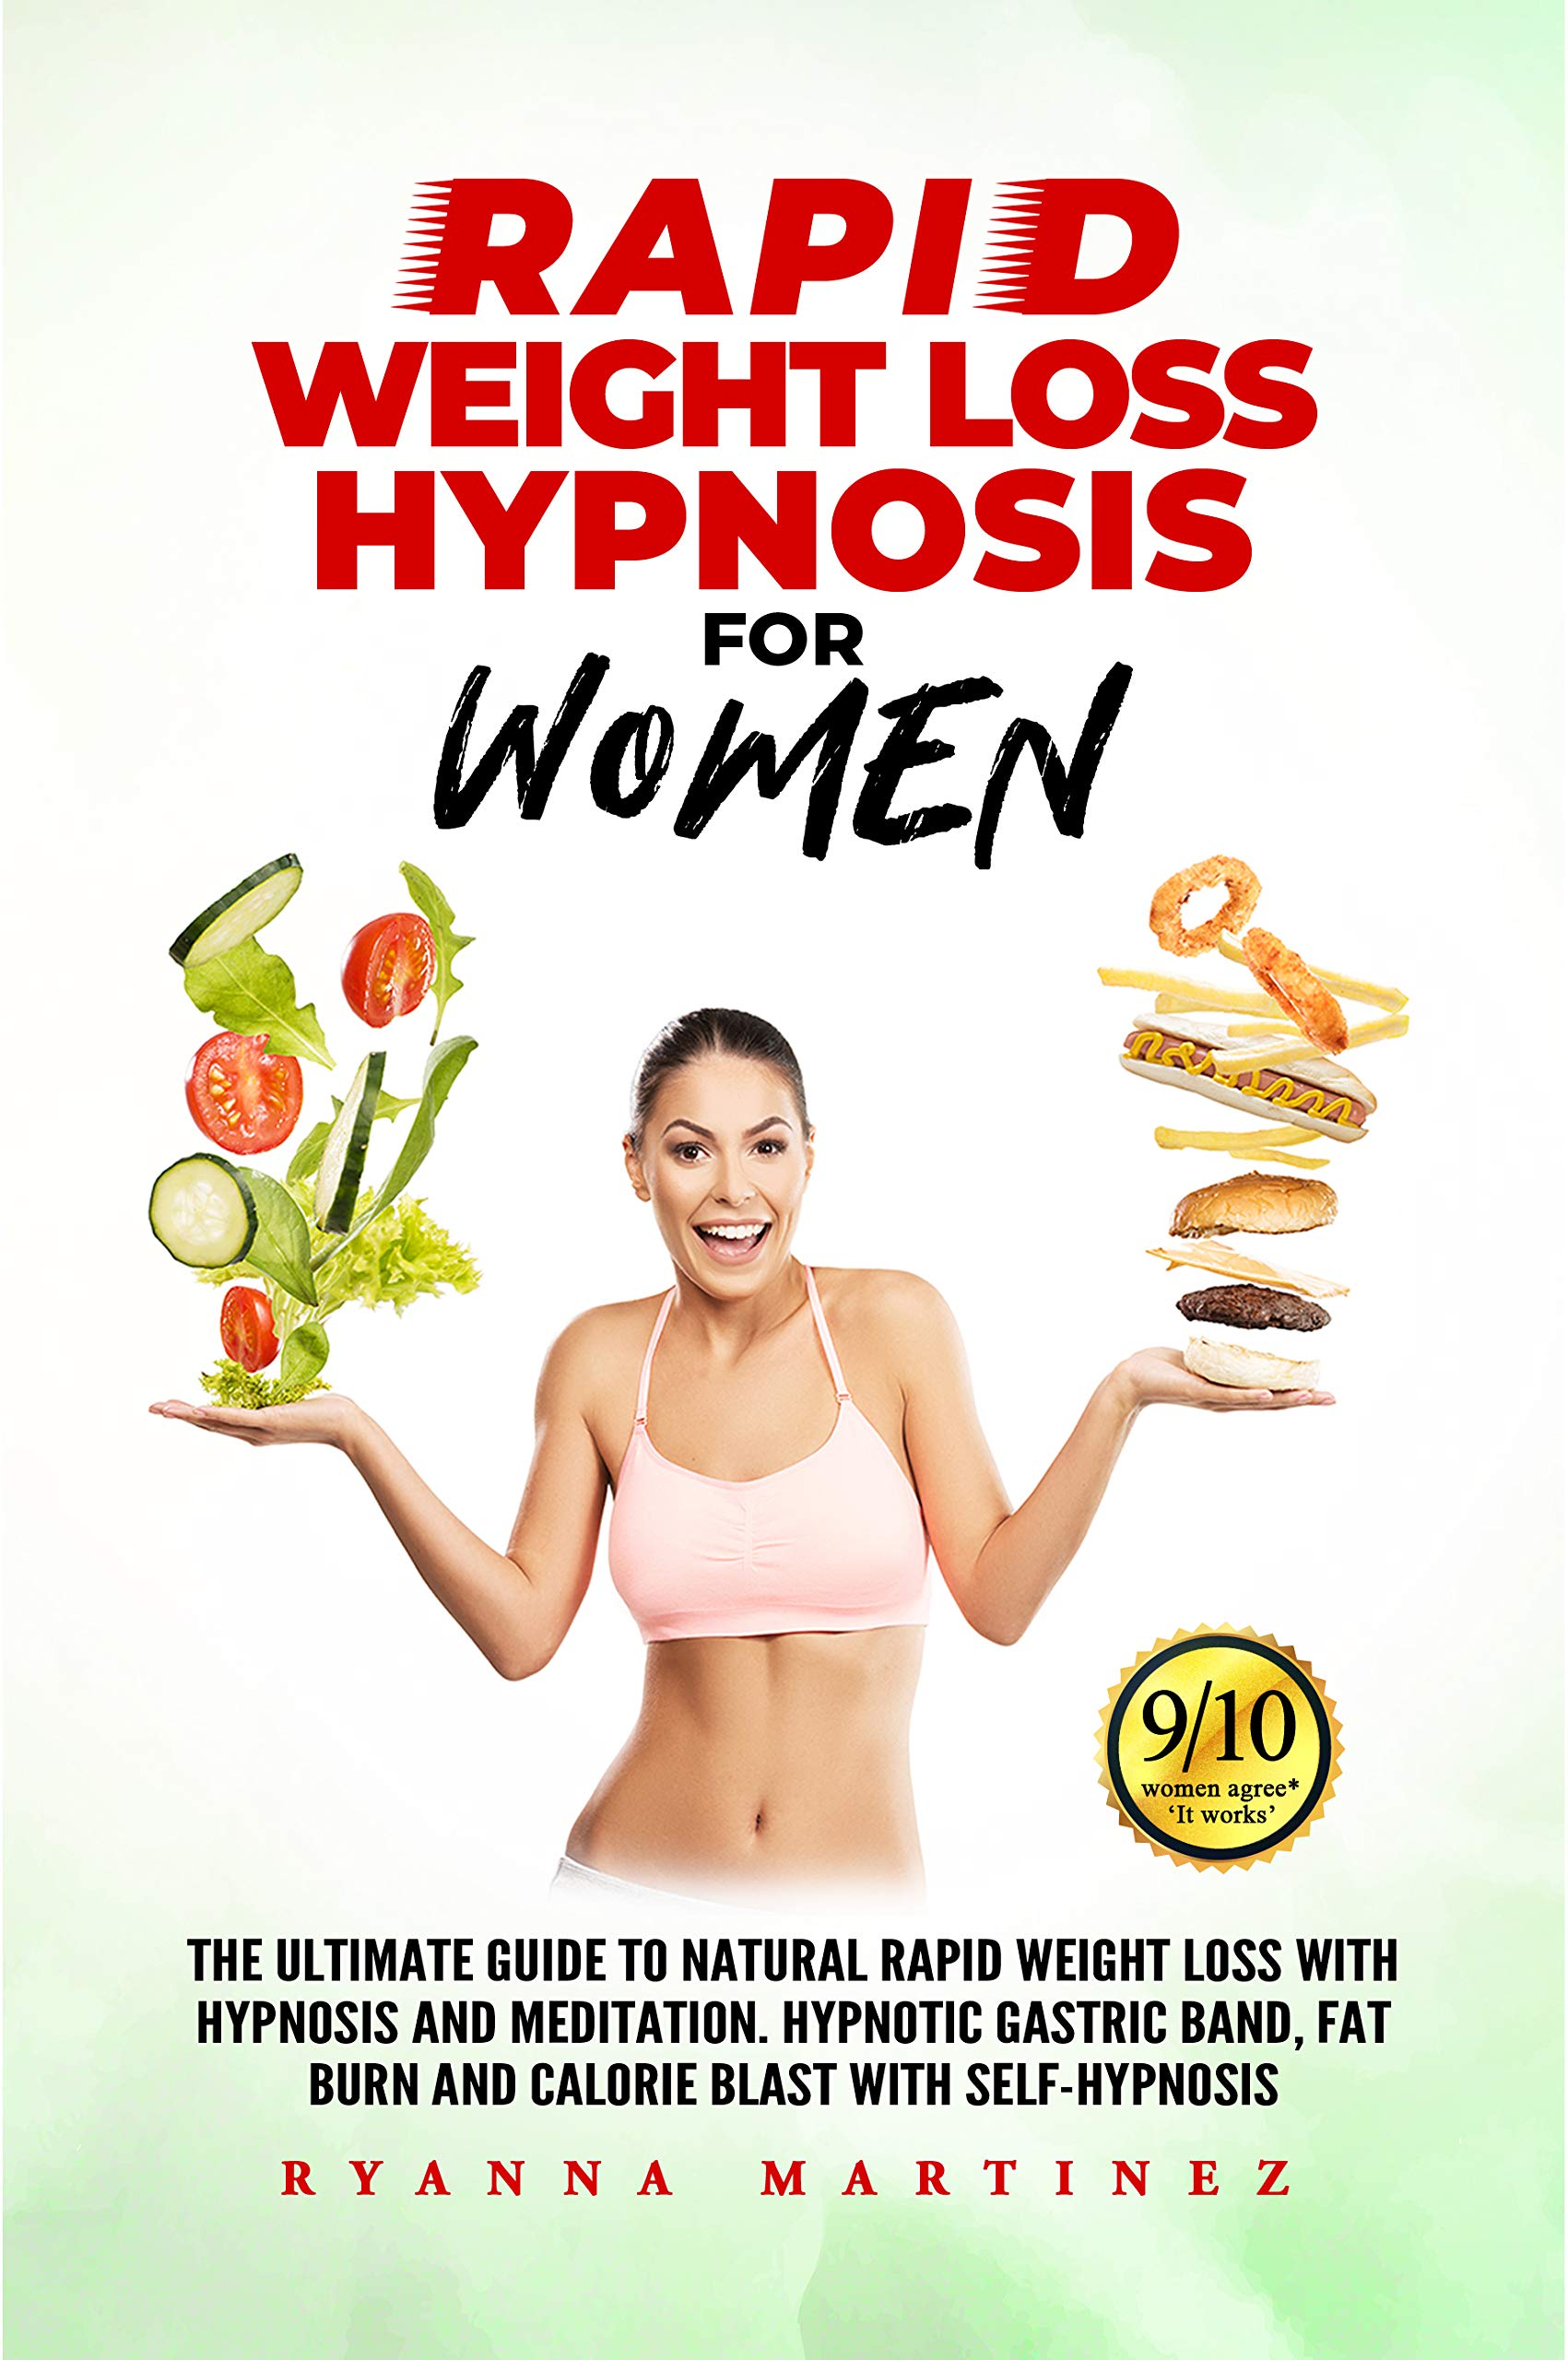 RAPID WEIGHT LOSS HYPNOSIS FOR WOMEN: The Ultimate Guide to Natural Rapid Weight Loss with Hypnosis and Meditation. Hypnotic Gastric Band, Fat Burn and Calorie Blast with Self-Hypnosis